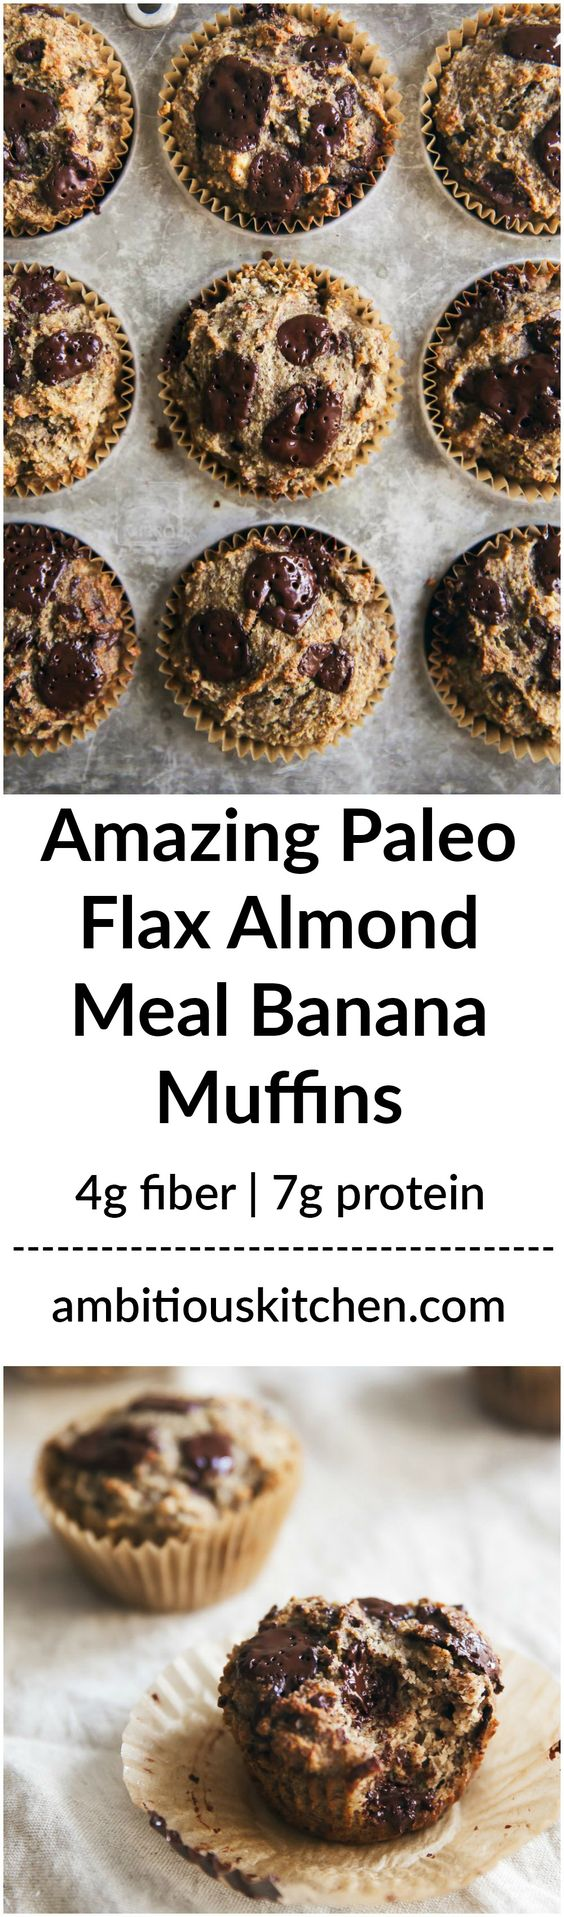 paleo-flax-almond-meal-banana-muffins-gluten-free